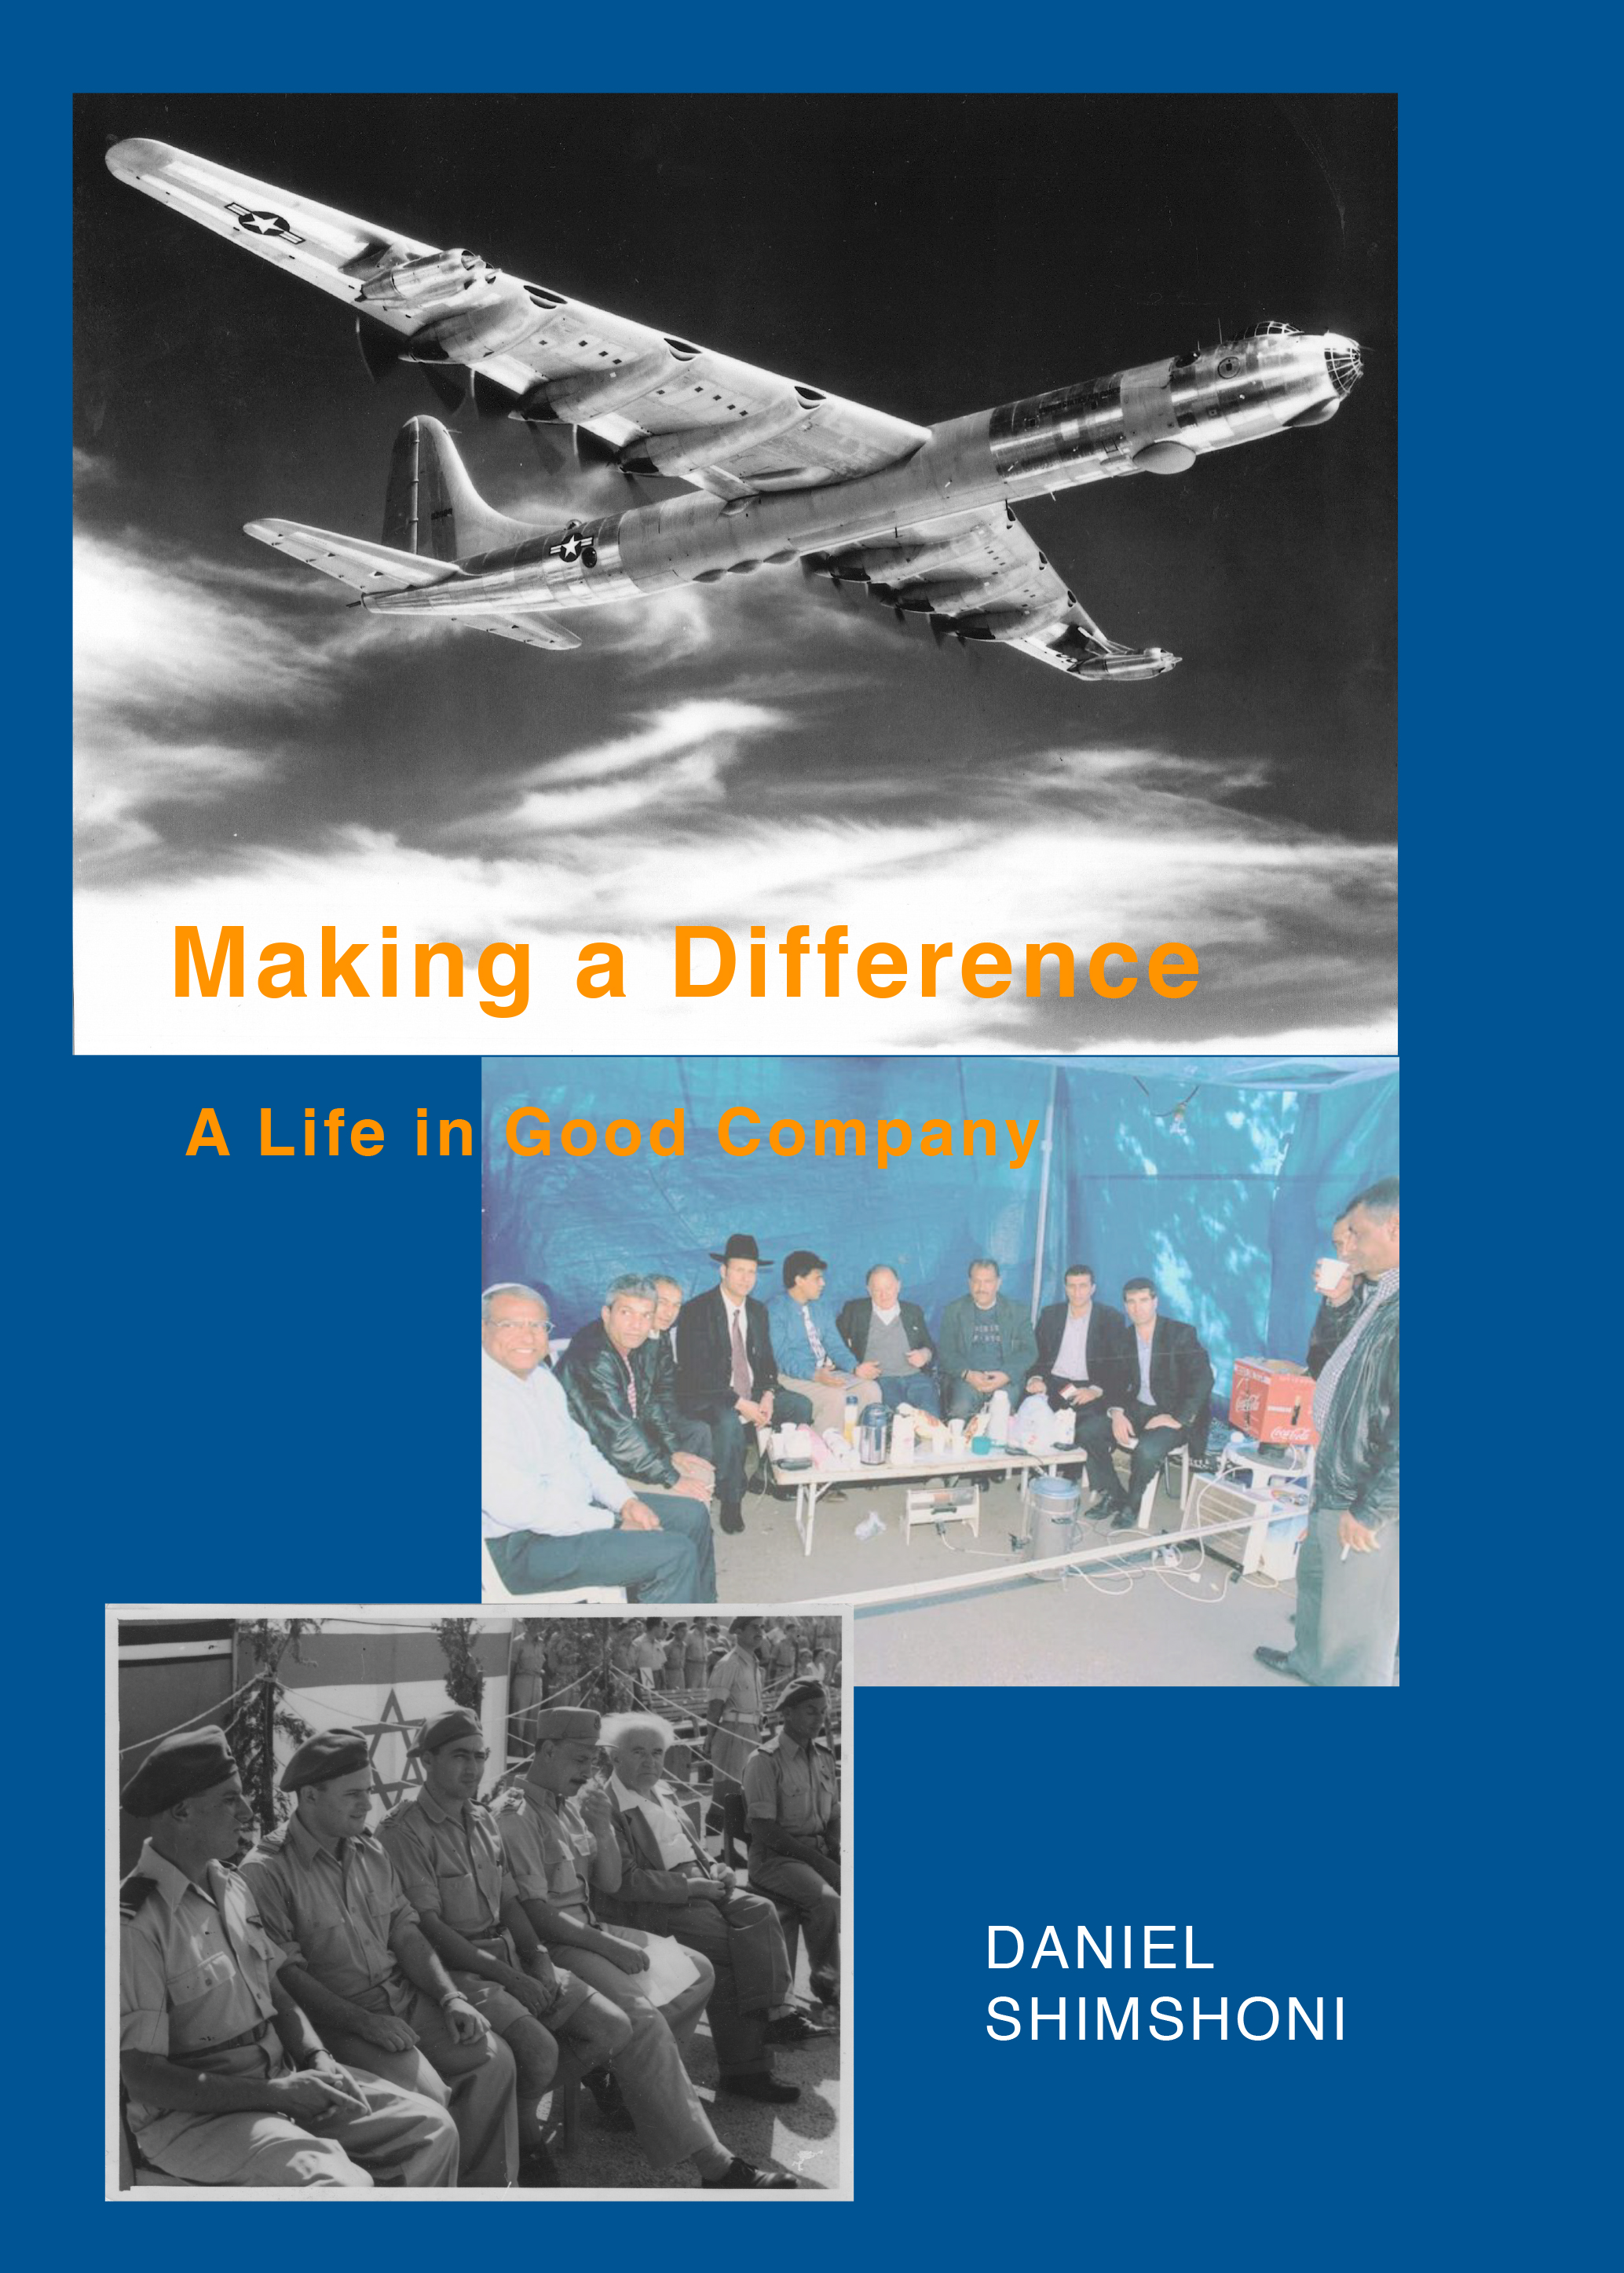 Making A Difference, A Life in Good Company